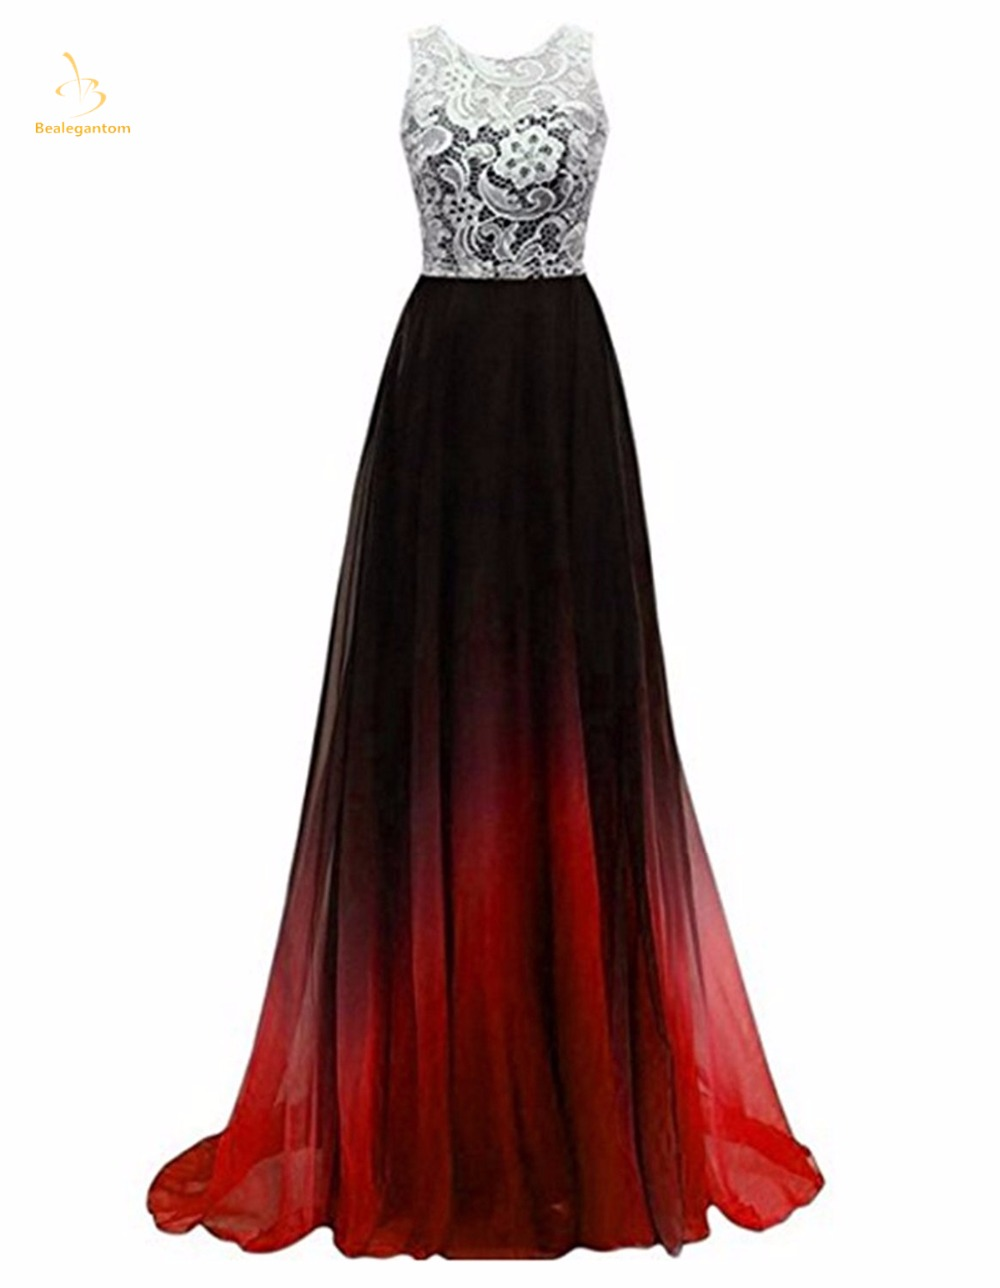 Bealegantom Sexy Gradient Long Lace Evening Dresses 2019 With Zipper Formal Prom Party Gown Vestido Longo QA1434